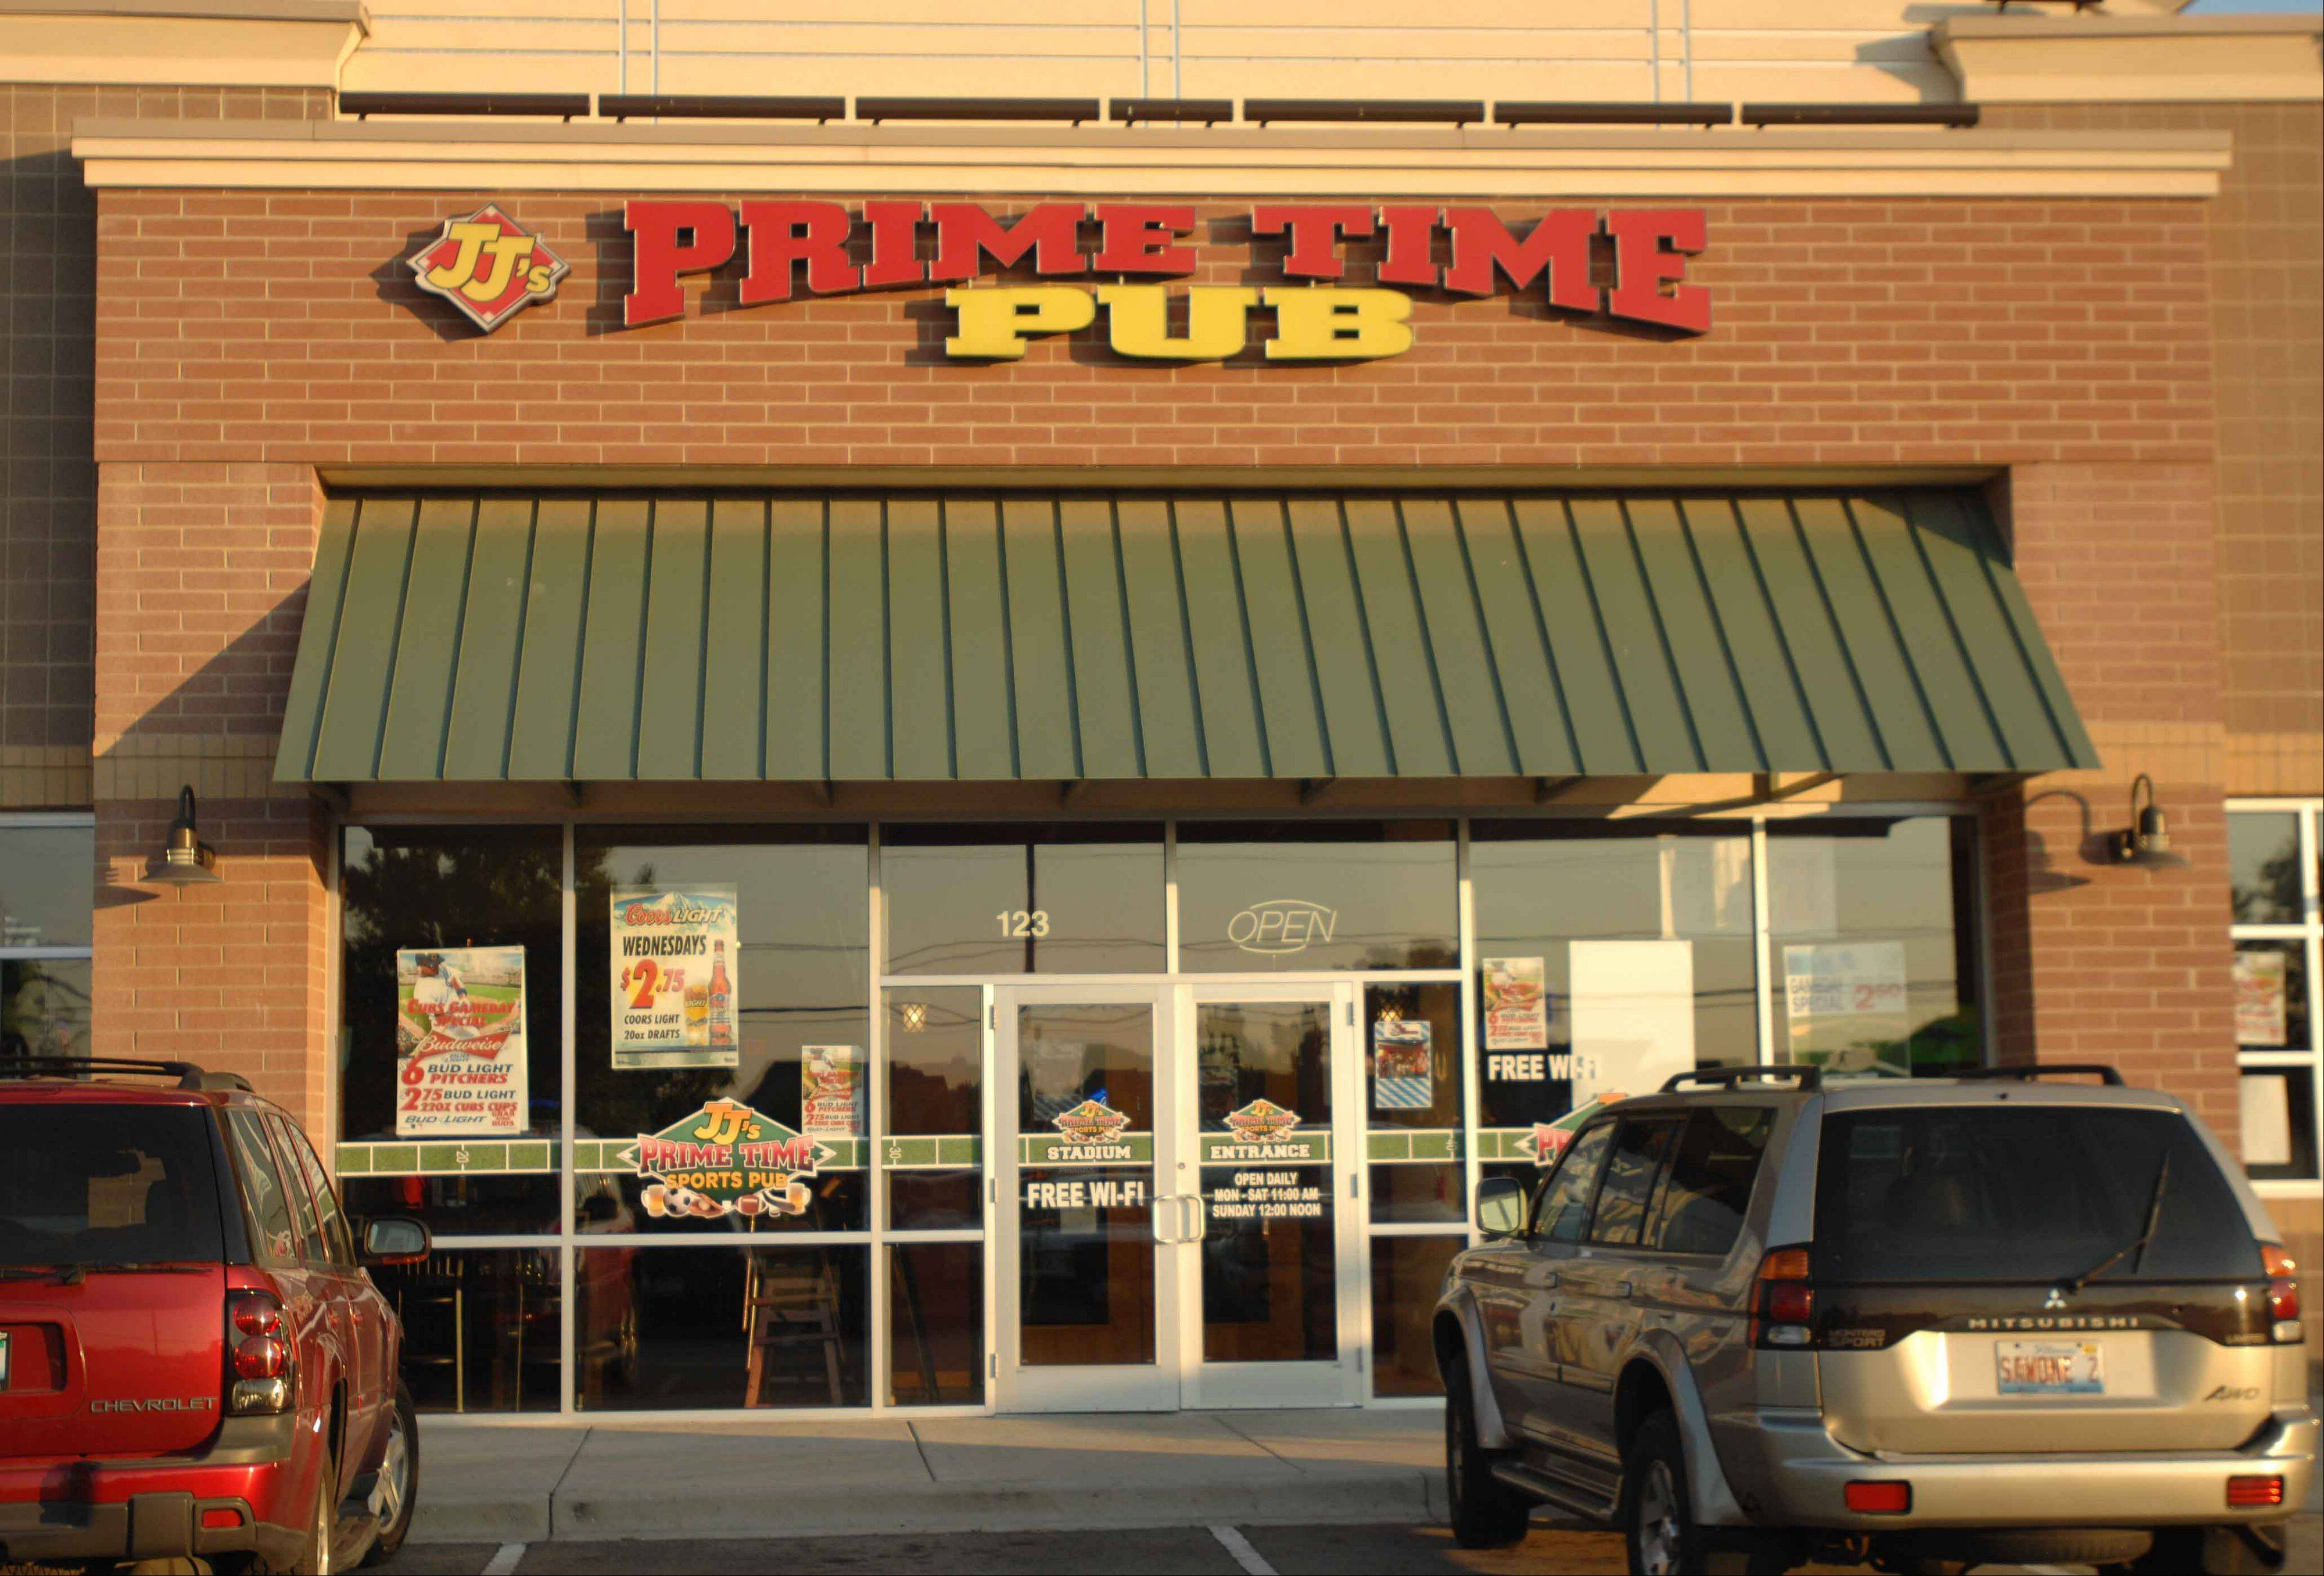 JJ's Prime Time opened in February.